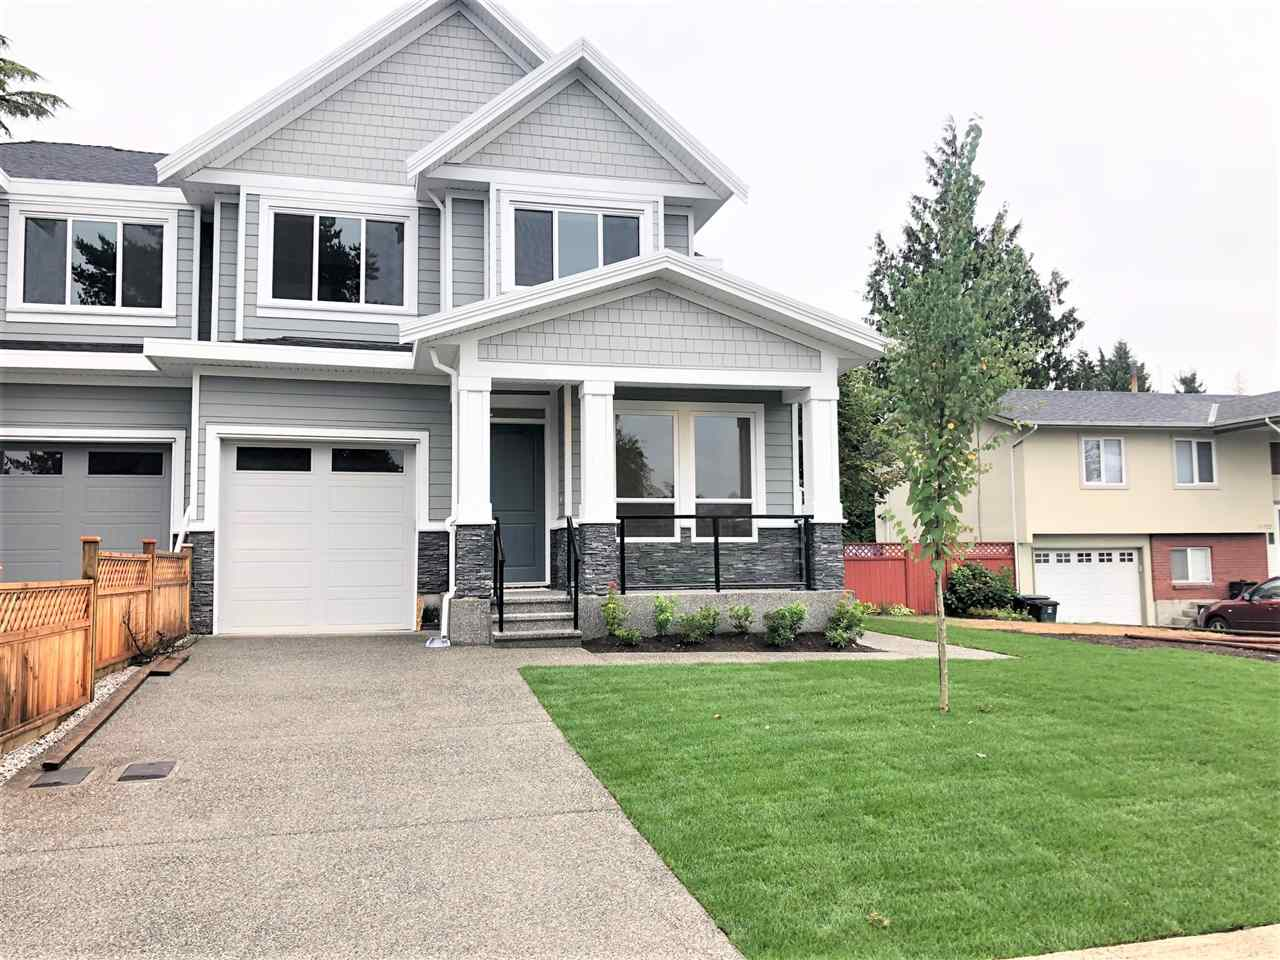 Removed: 11728 193a Street, Pitt Meadows, BC - Removed on 2019-09-20 07:36:15